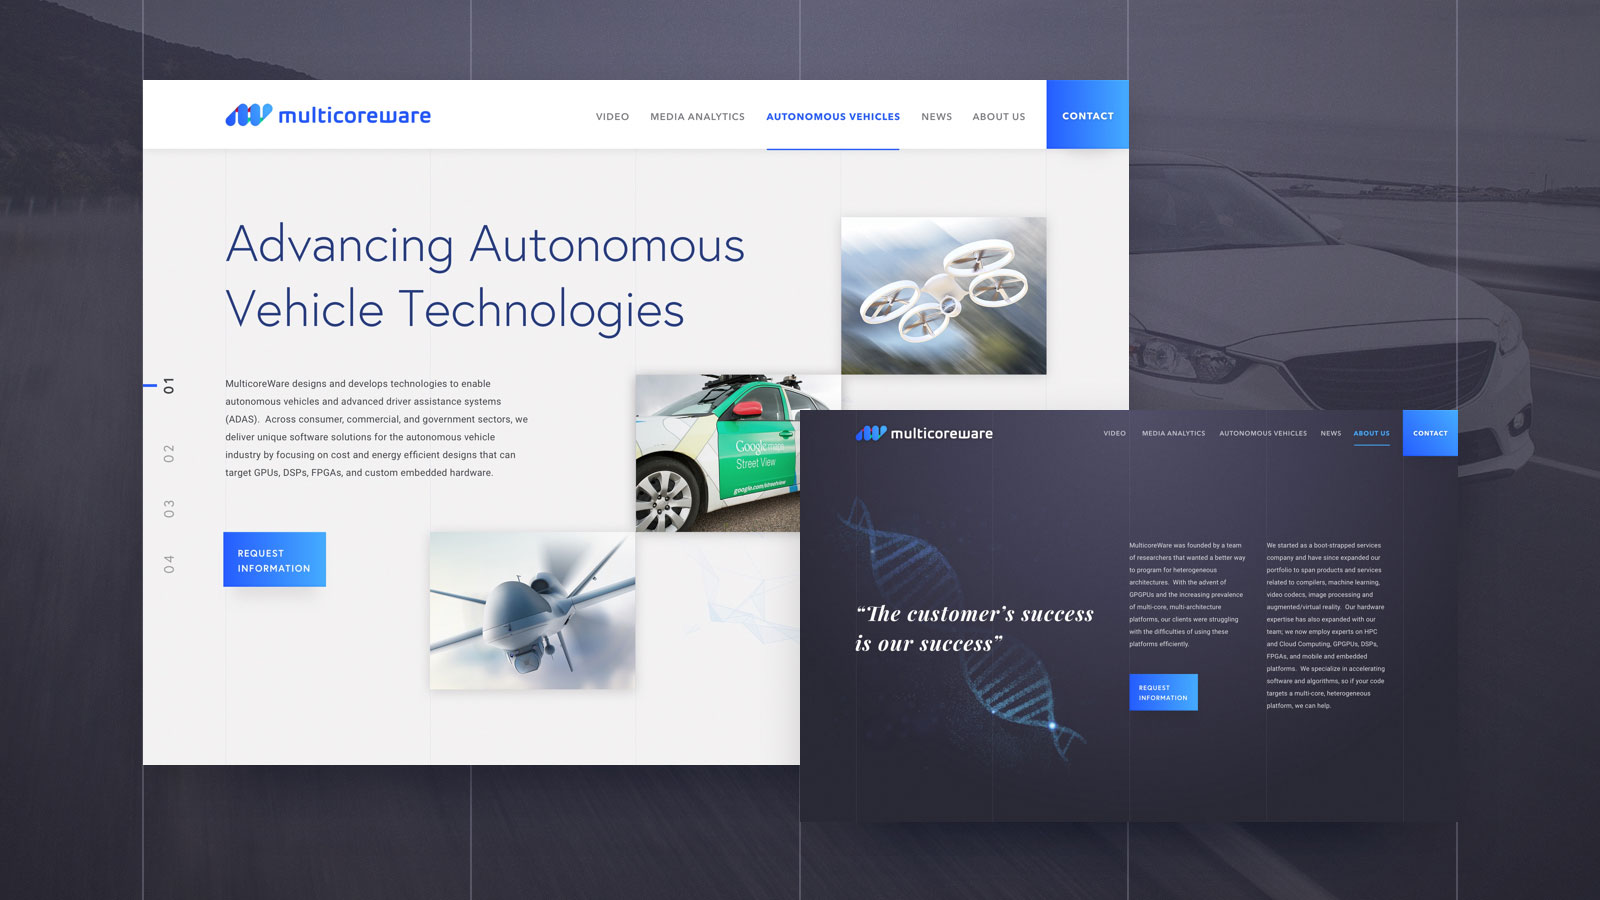 Full branding and art direction and UX Design